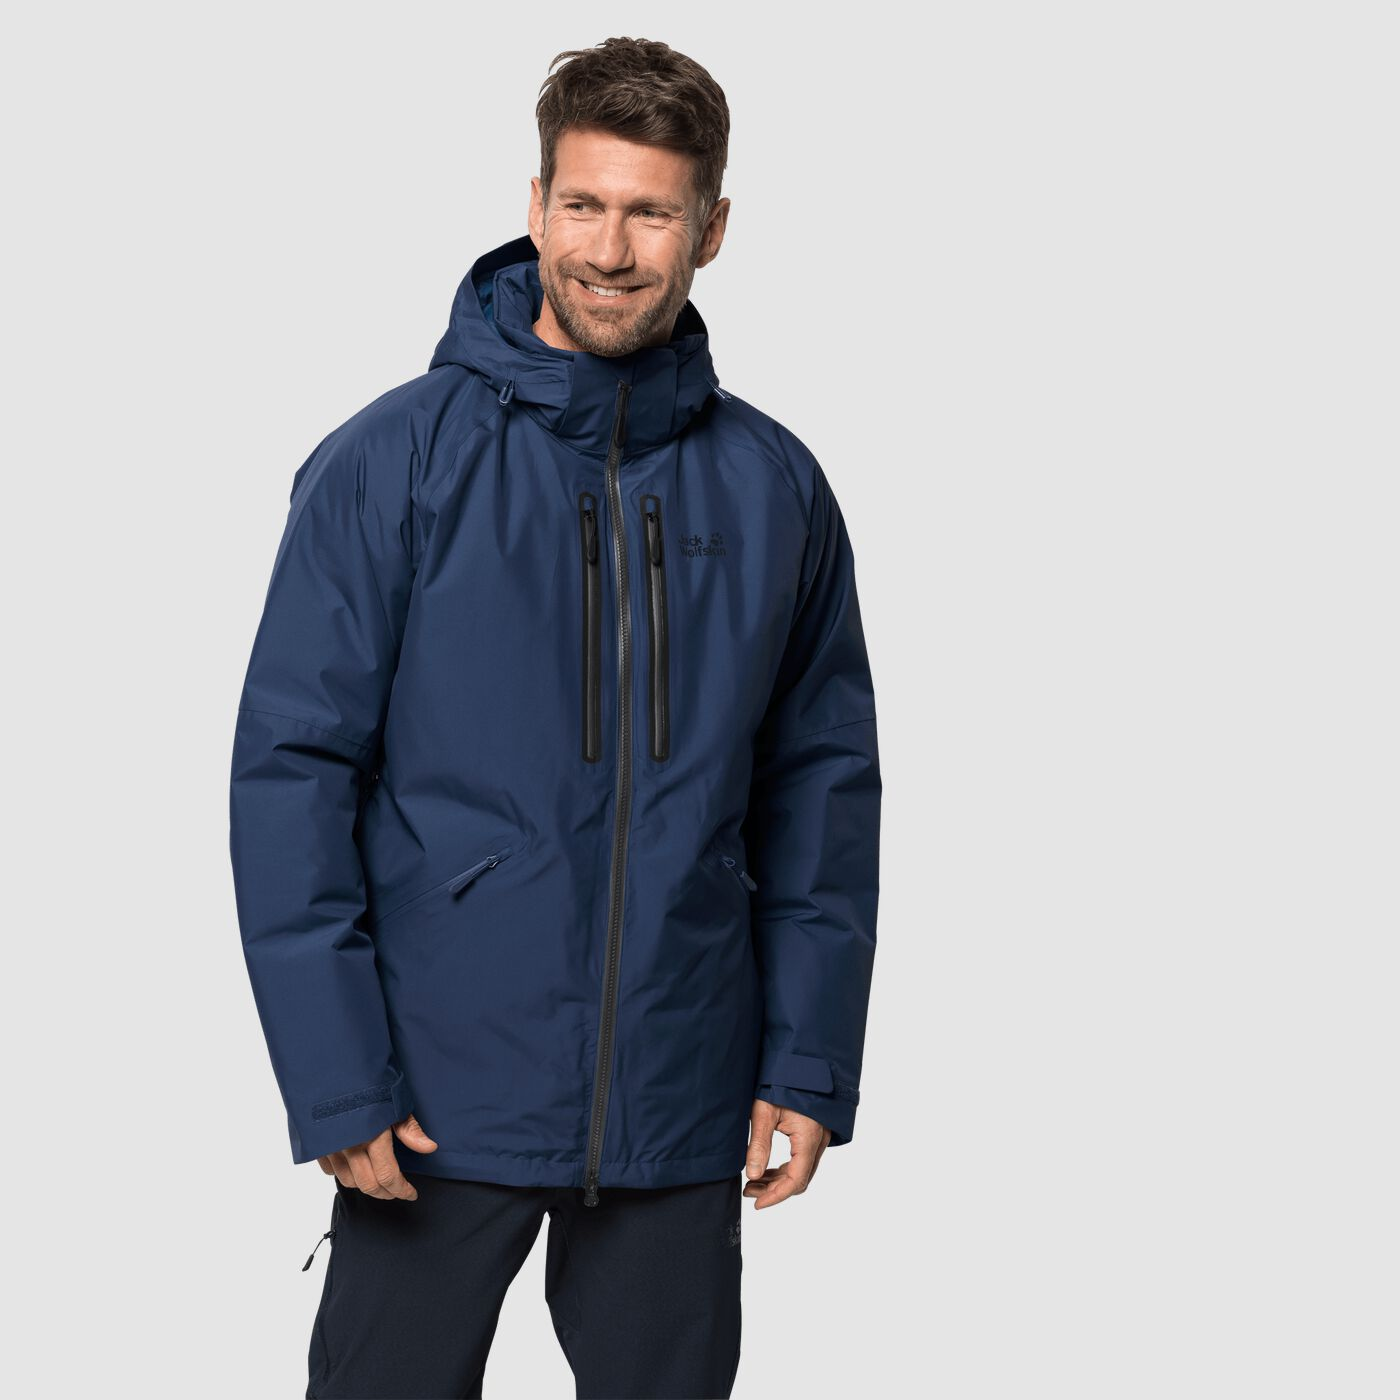 GLEN CANYON PARKA M